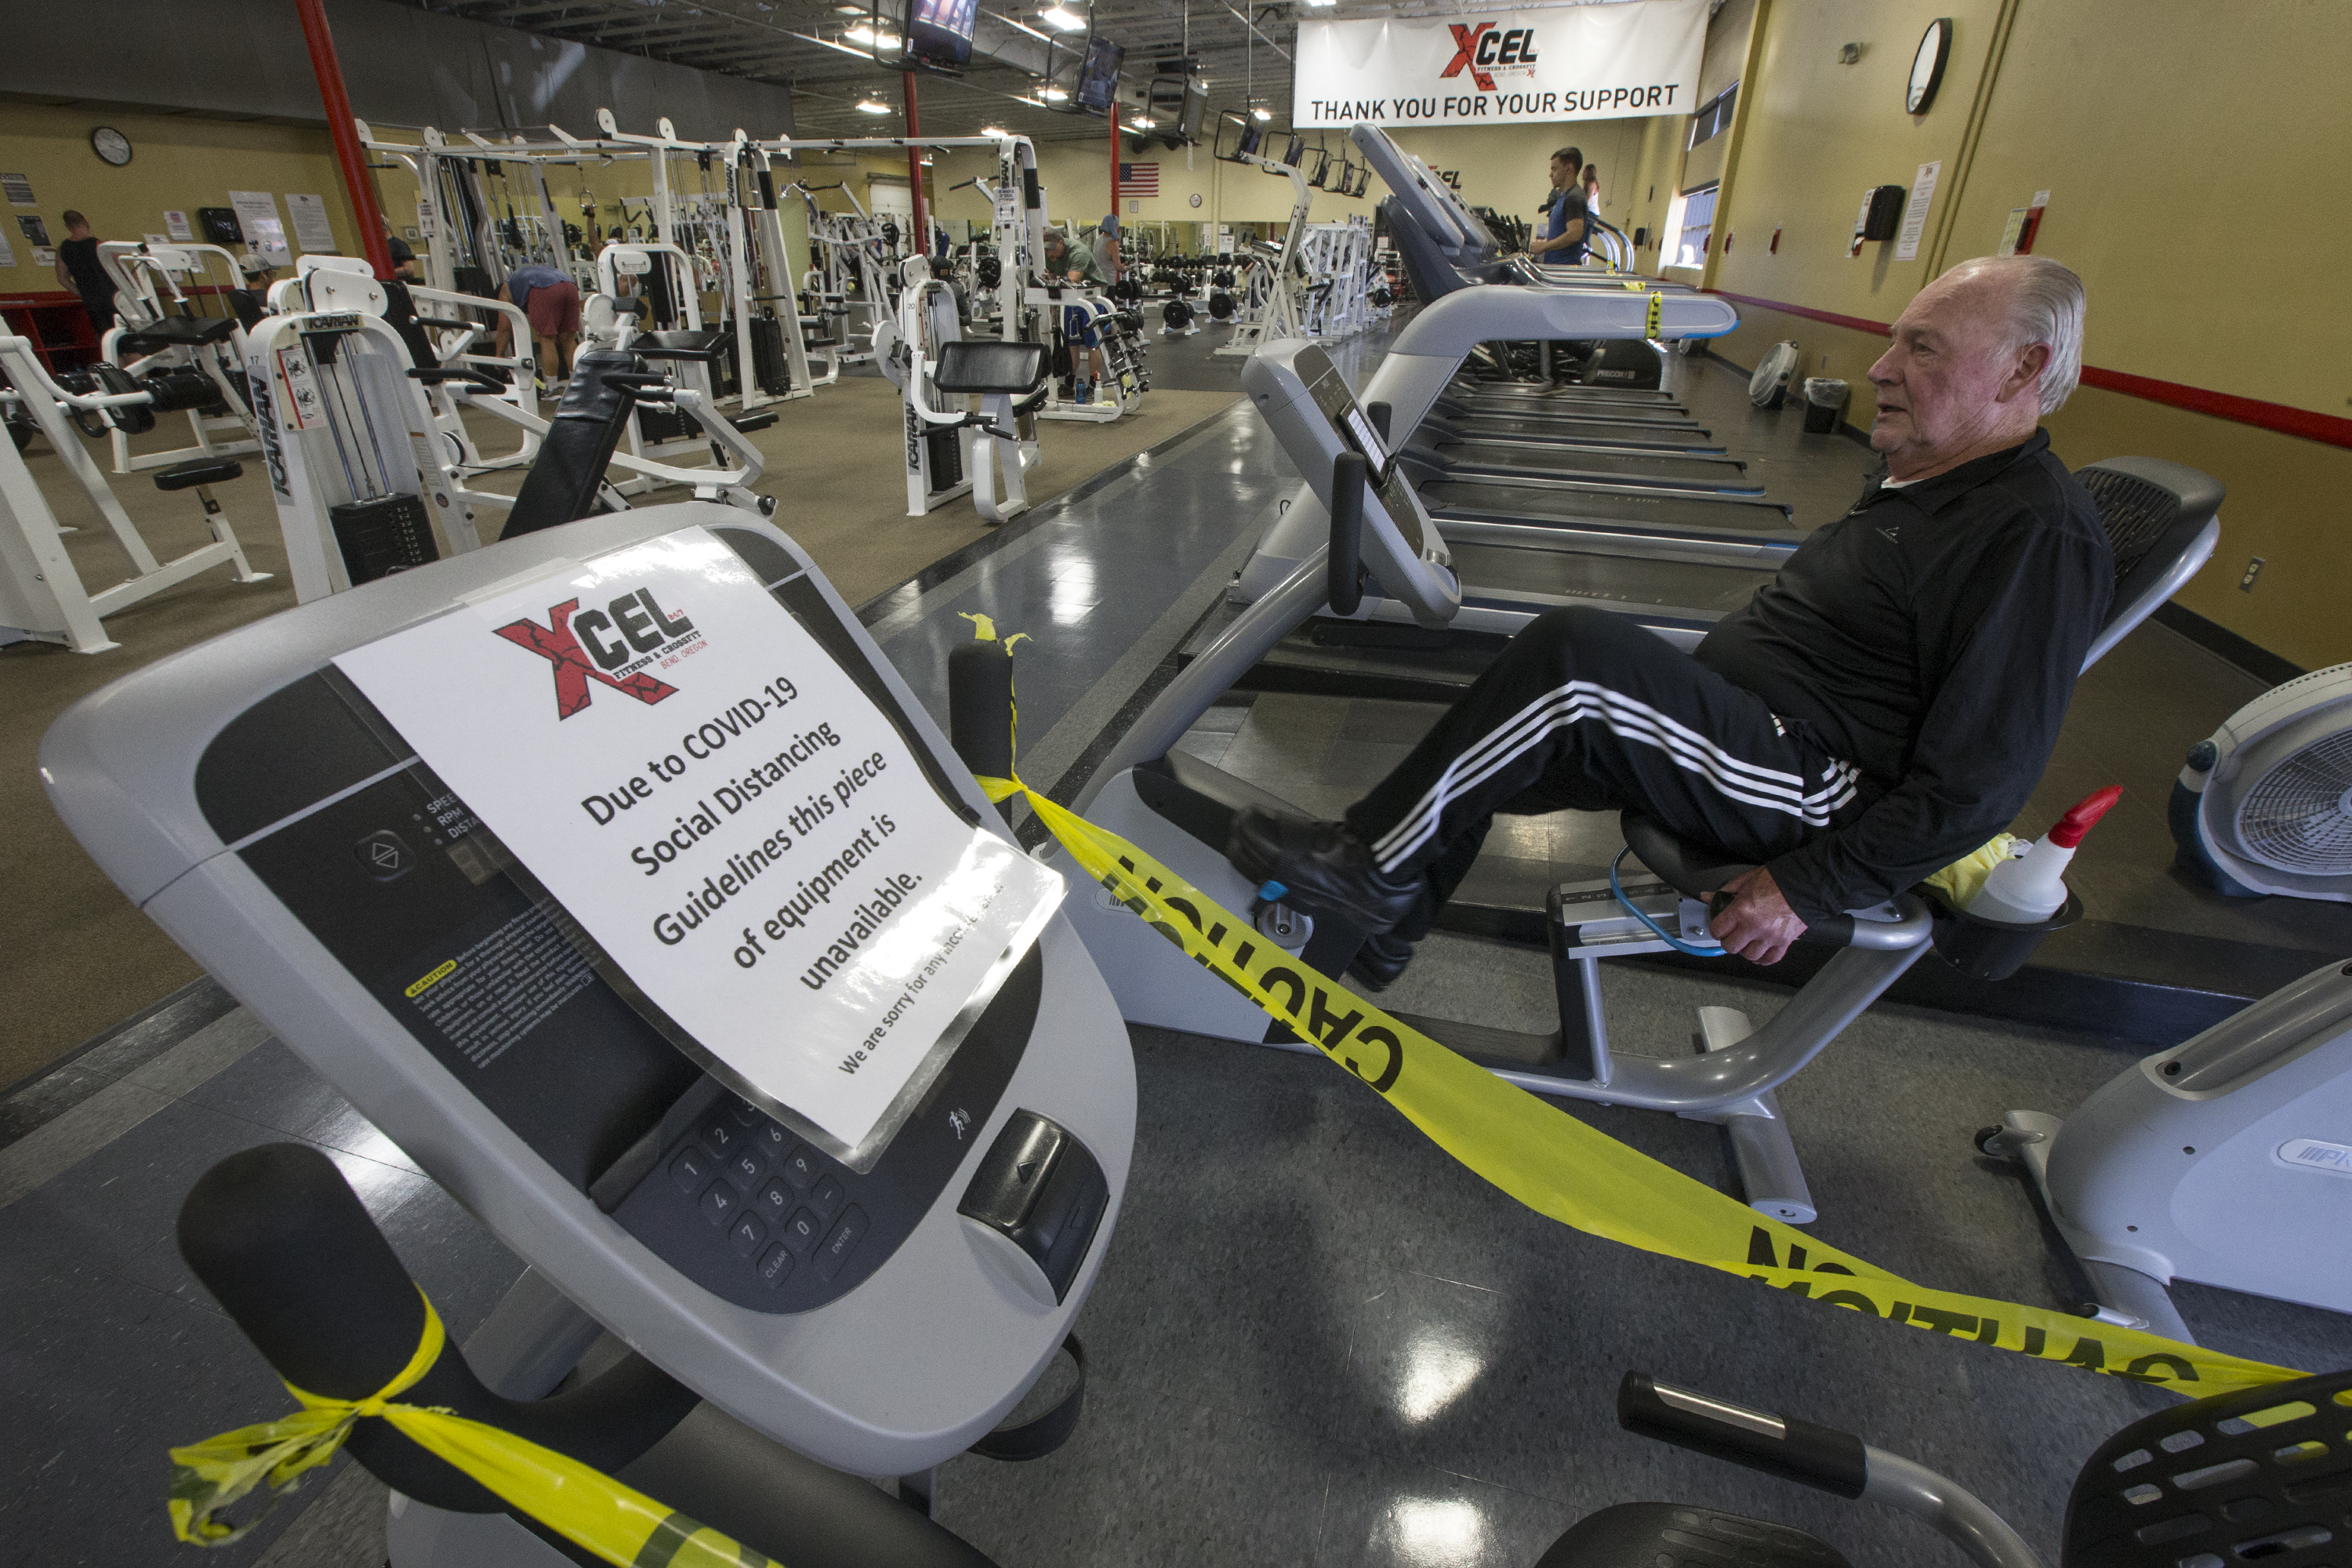 Local Gyms Opening Up With Covid 19 Guidelines Coronavirus Bendbulletin Com